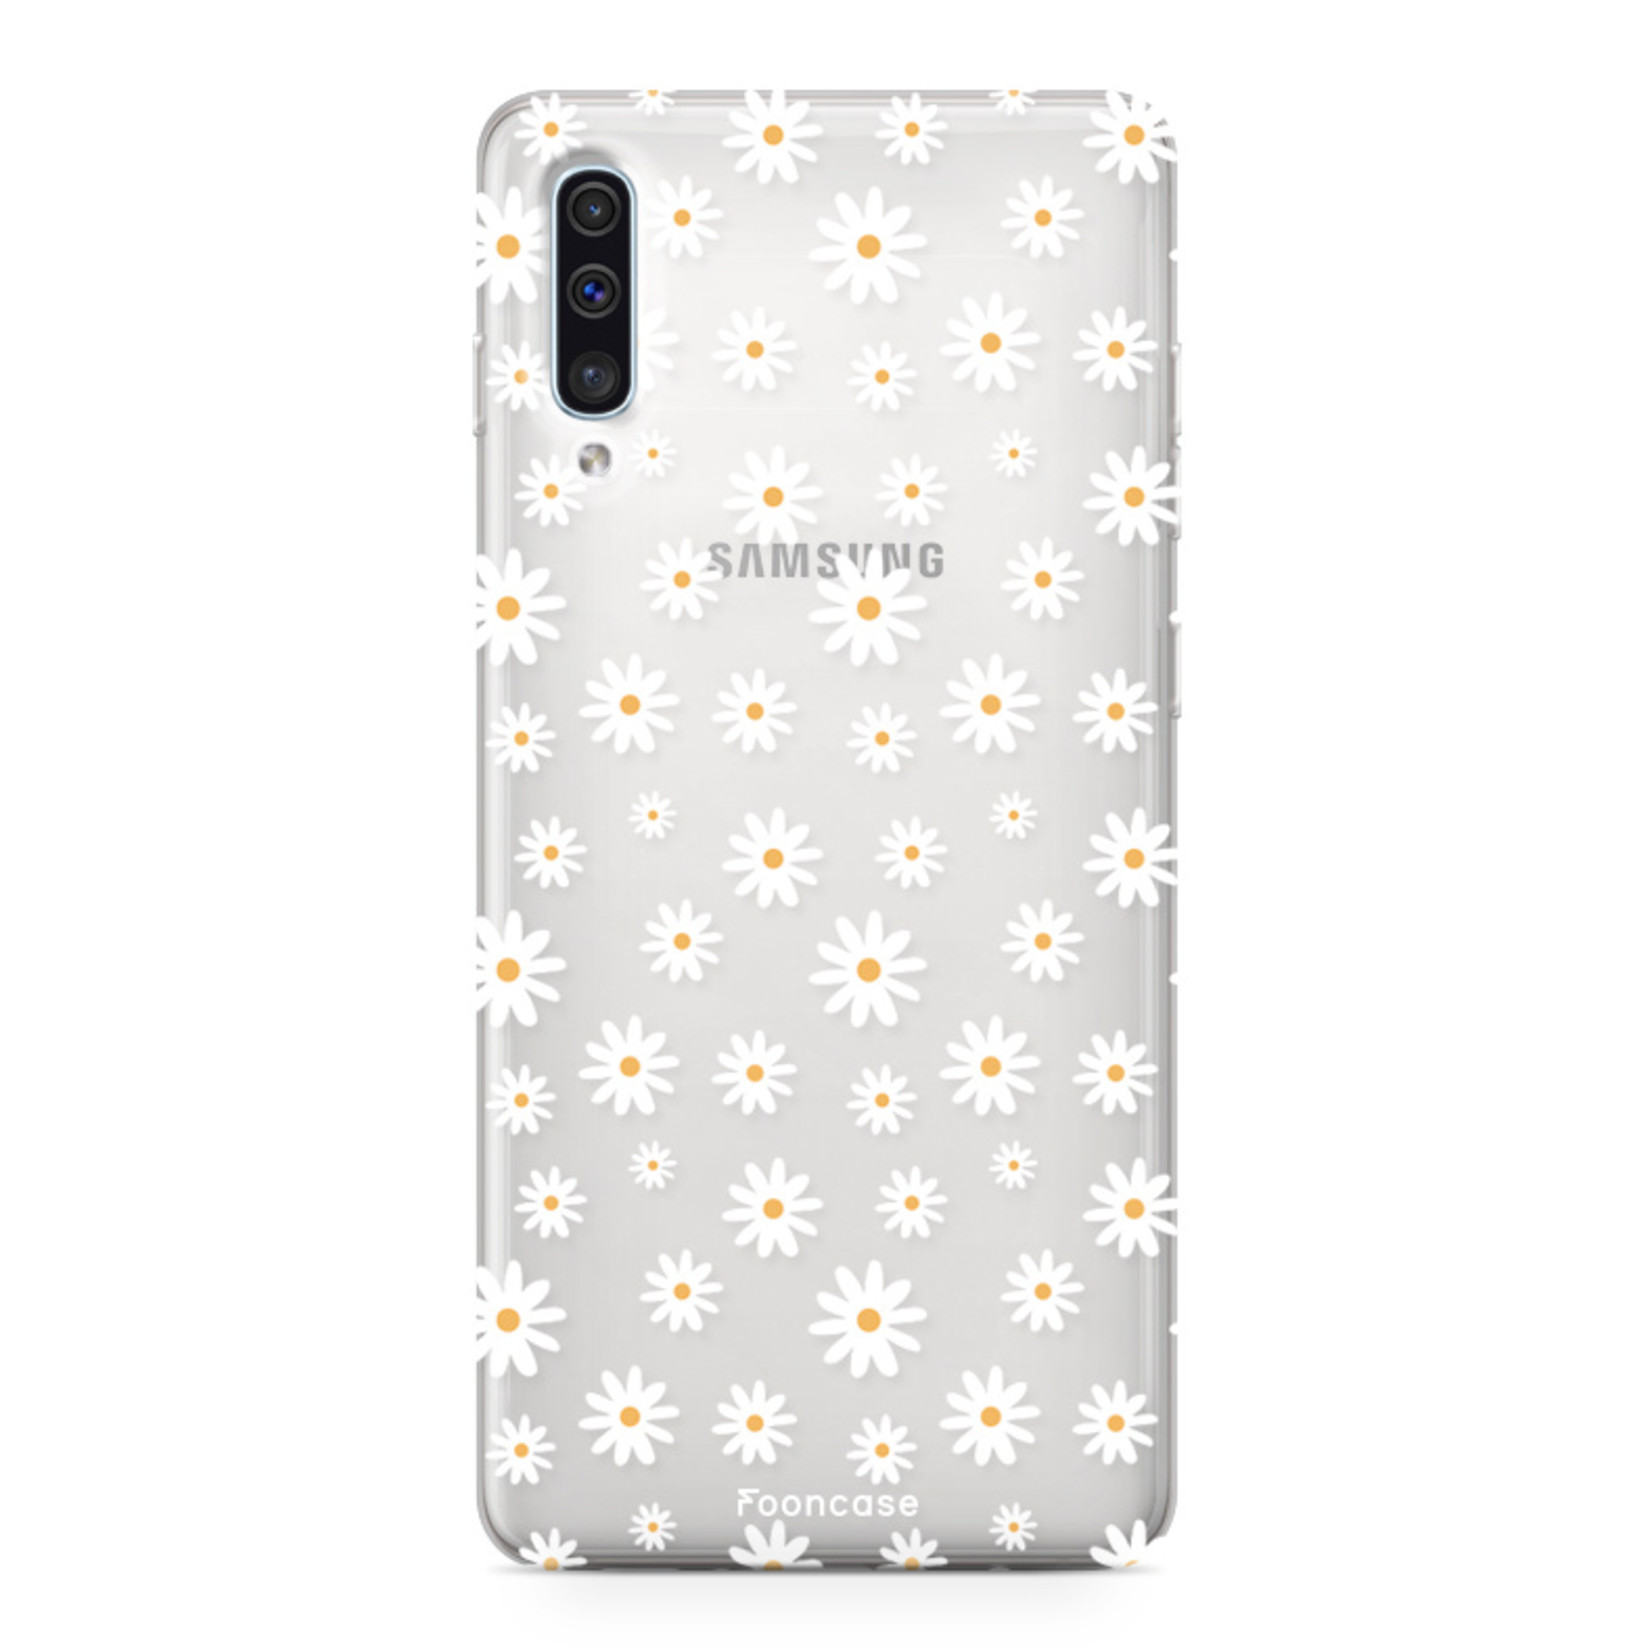 Samsung Galaxy A70 hoesje TPU Soft Case - Back Cover - Madeliefjes